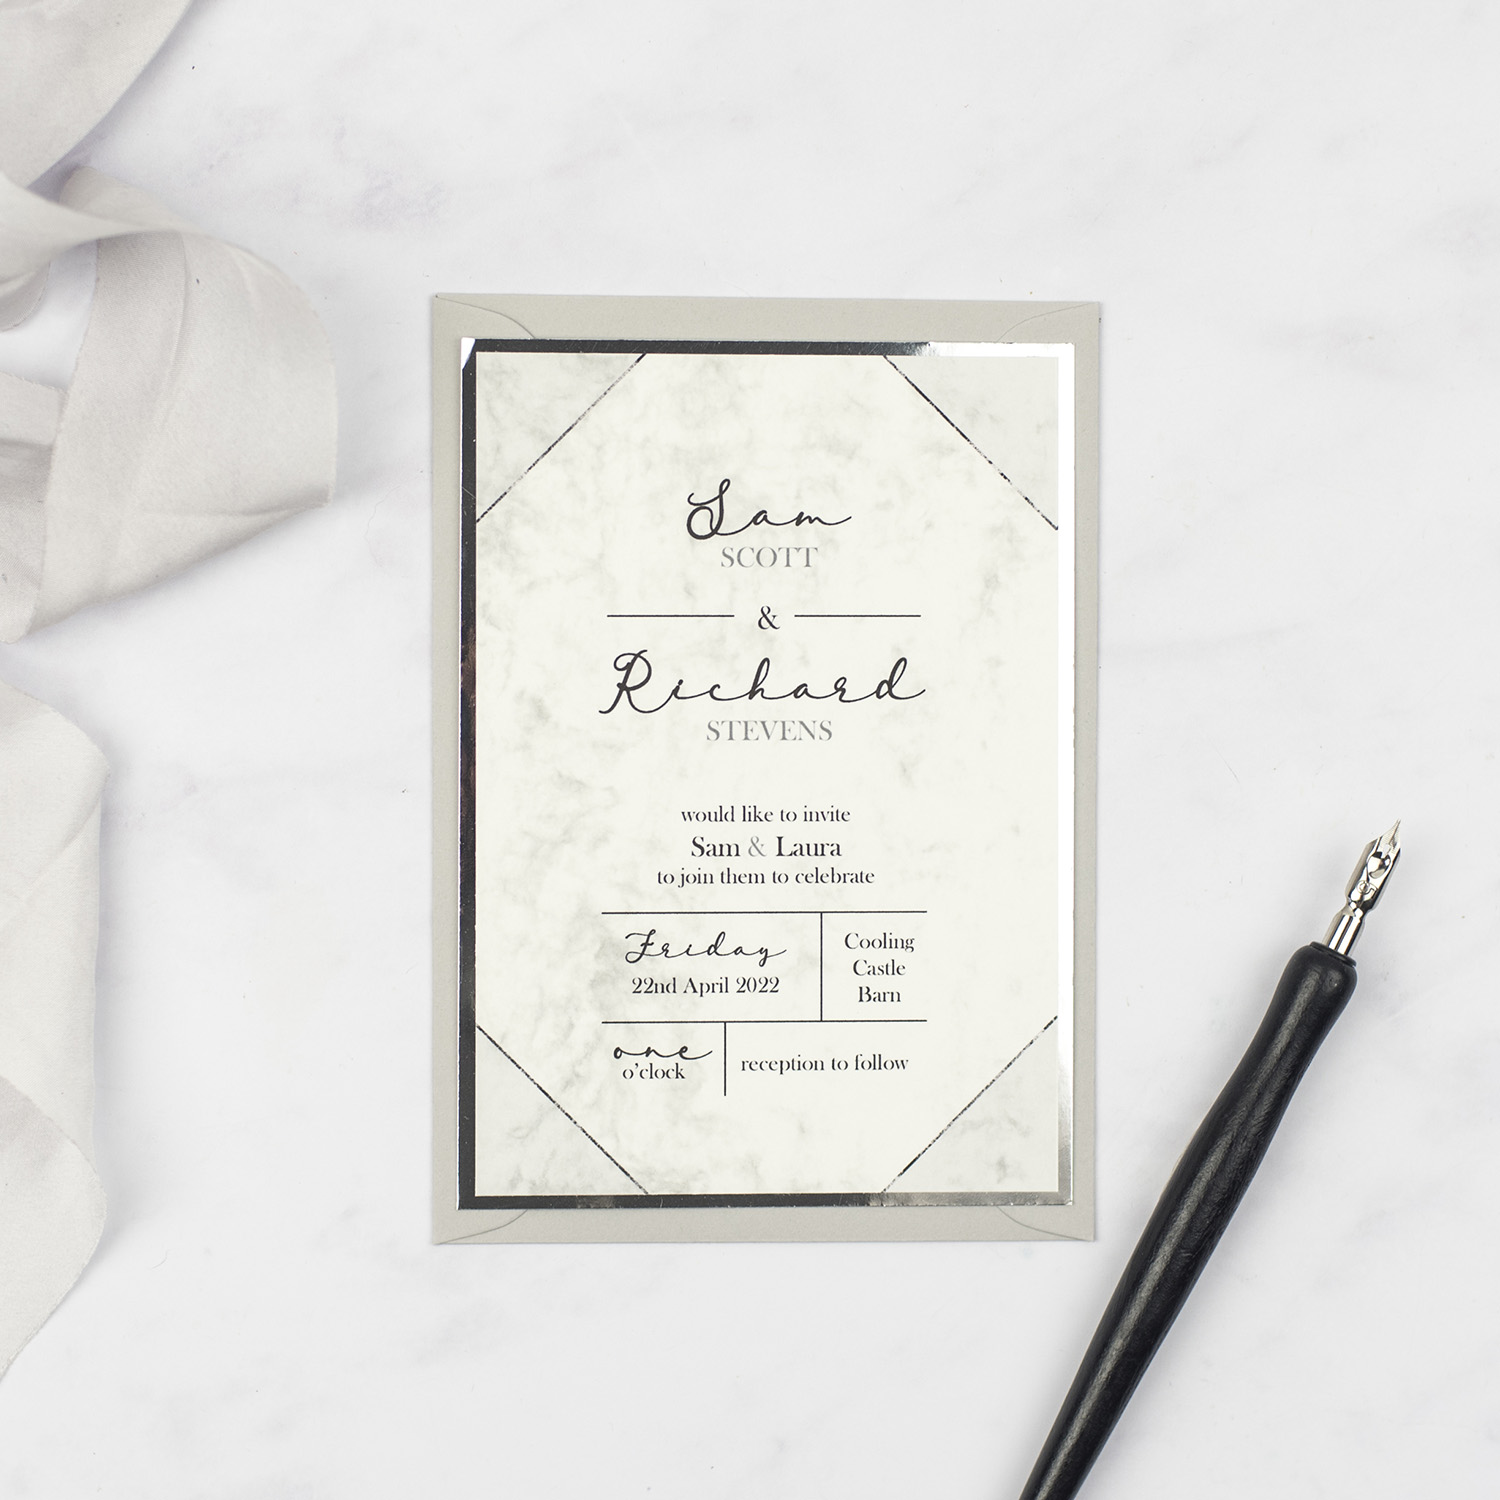 handmade wedding invitation marble effect geometric lines silver foil edge